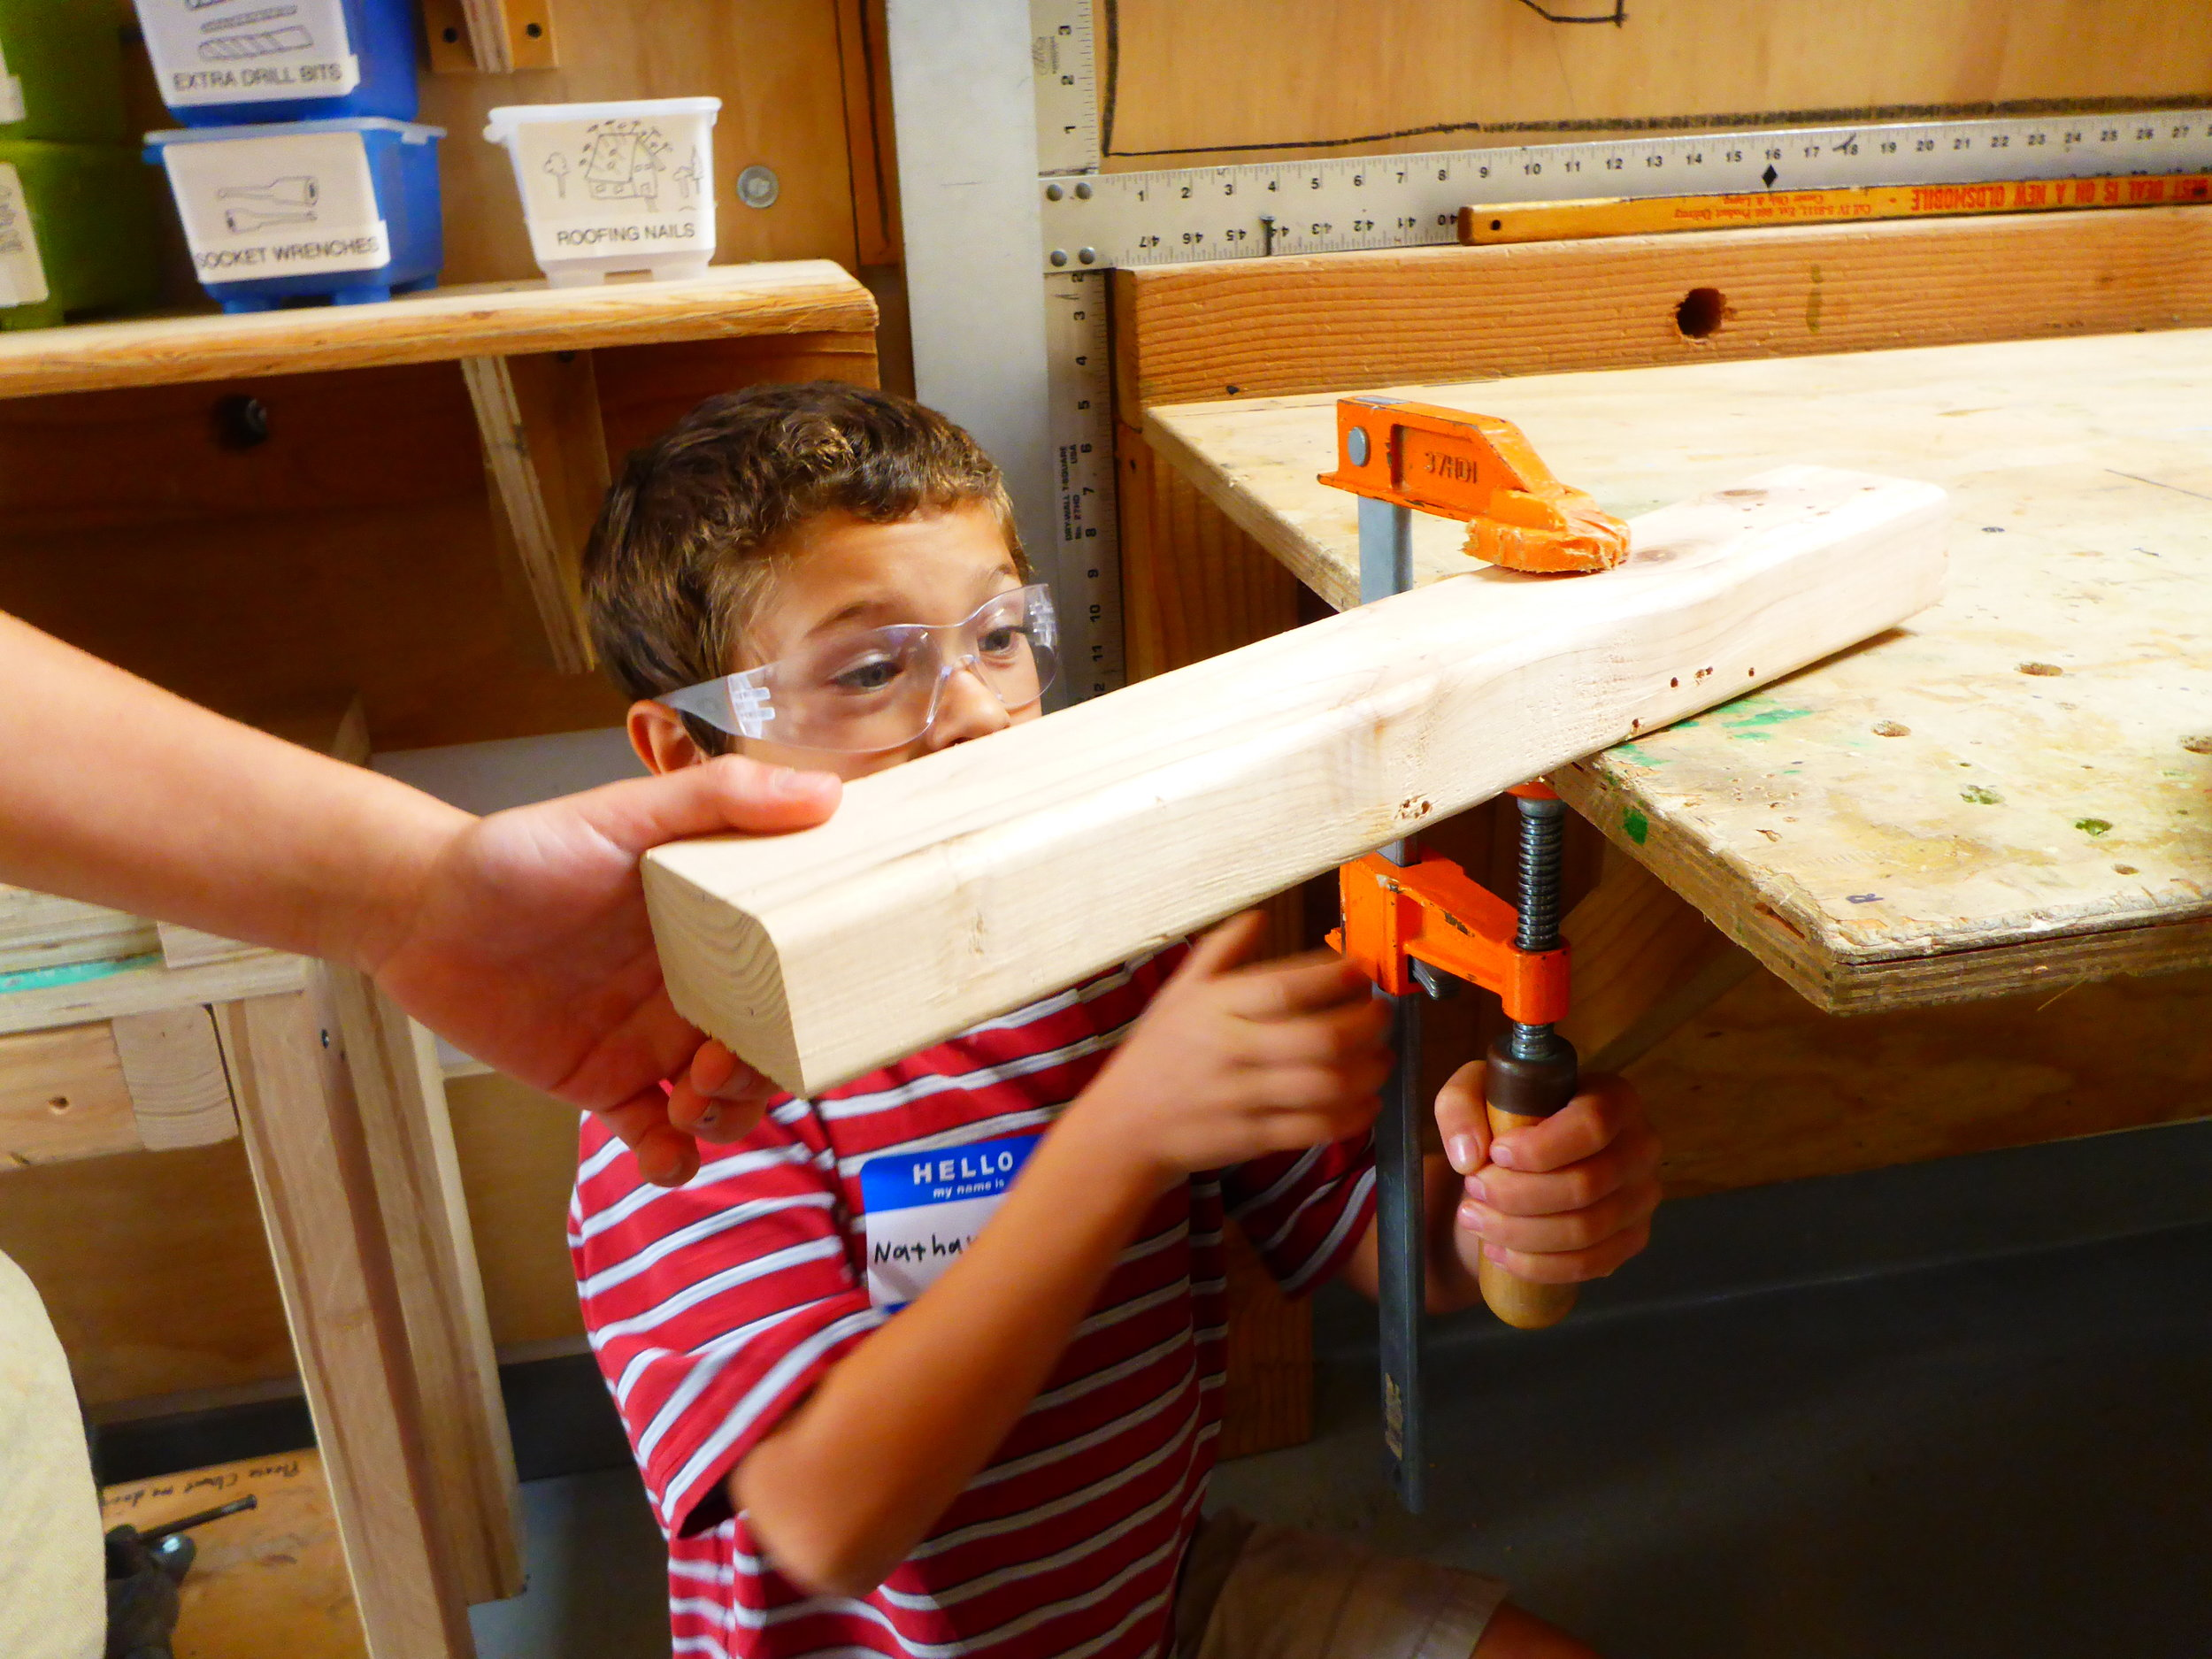 Clamp practice begins with teamwork and clamping wood to the table. Nathanael receives some help from a team mate as he lines up and tightens his clamp.